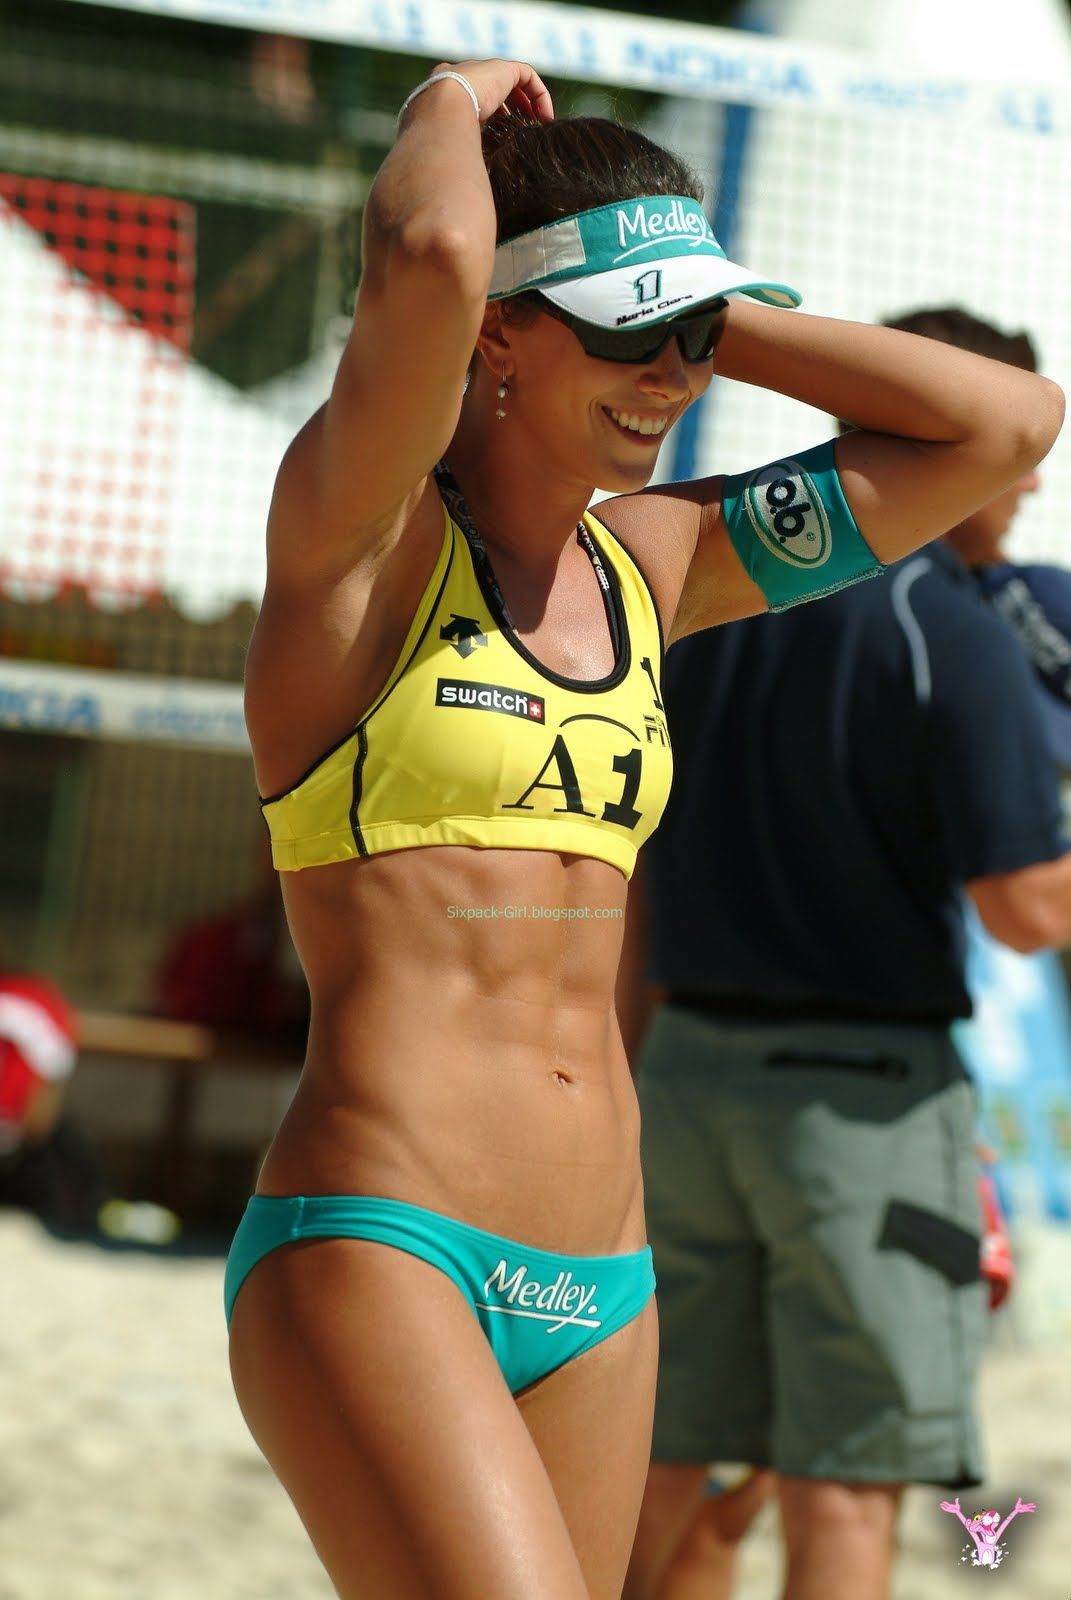 Cleavage Misty May-Treanor nude (81 photo), Sexy, Leaked, Selfie, lingerie 2017